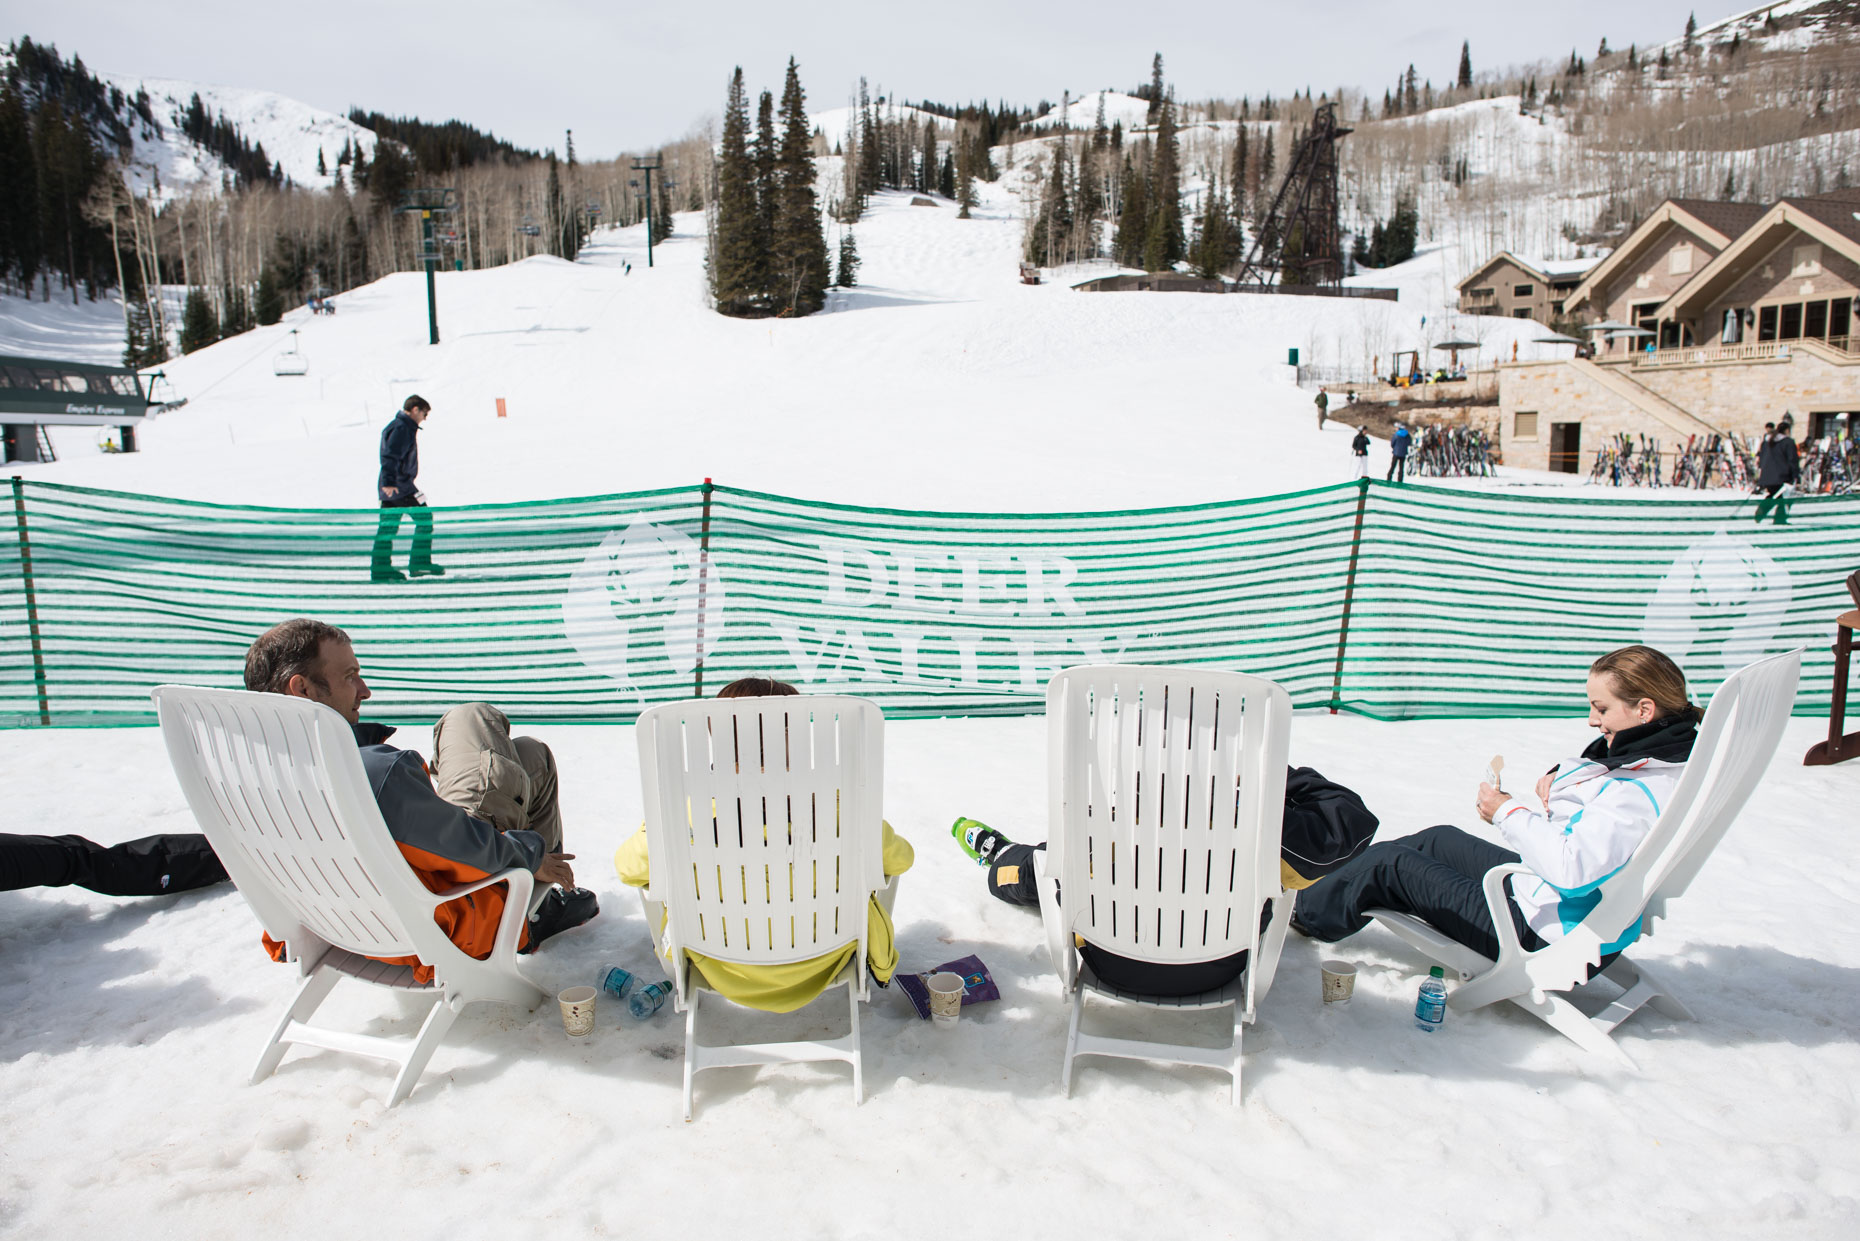 2015-03-15-AMEX-Deer-Valley-0094